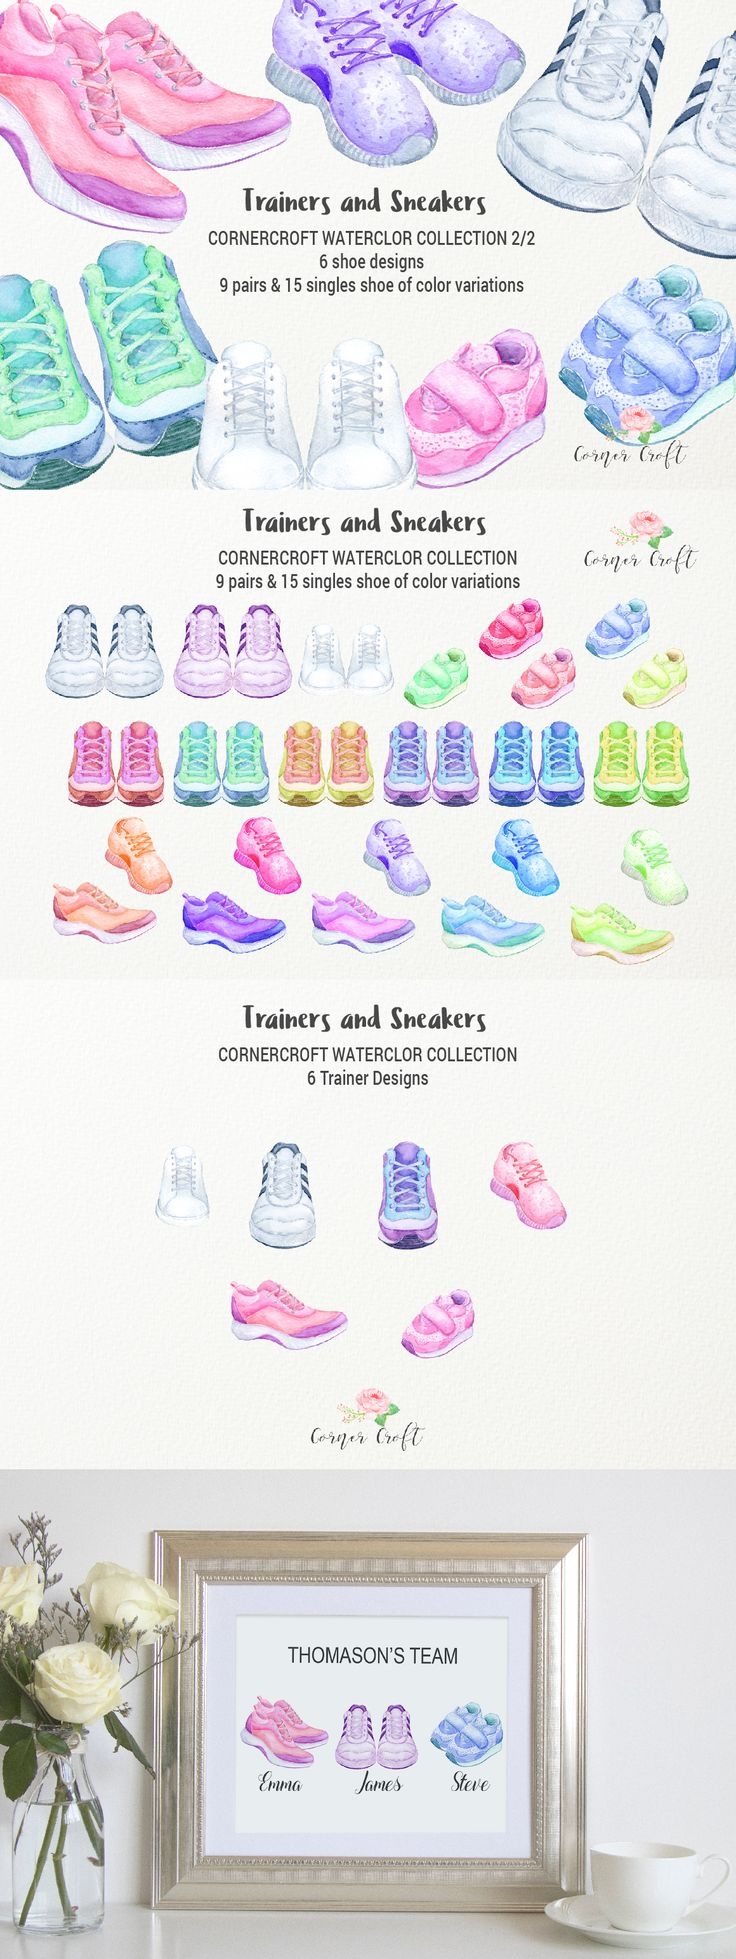 Watercolor trainers and sneakers for instant download. They are for men's, women's and kid's. There are white trainers and trainers in pink, green, purple, yellow and red. Perfect for creating personalised print.